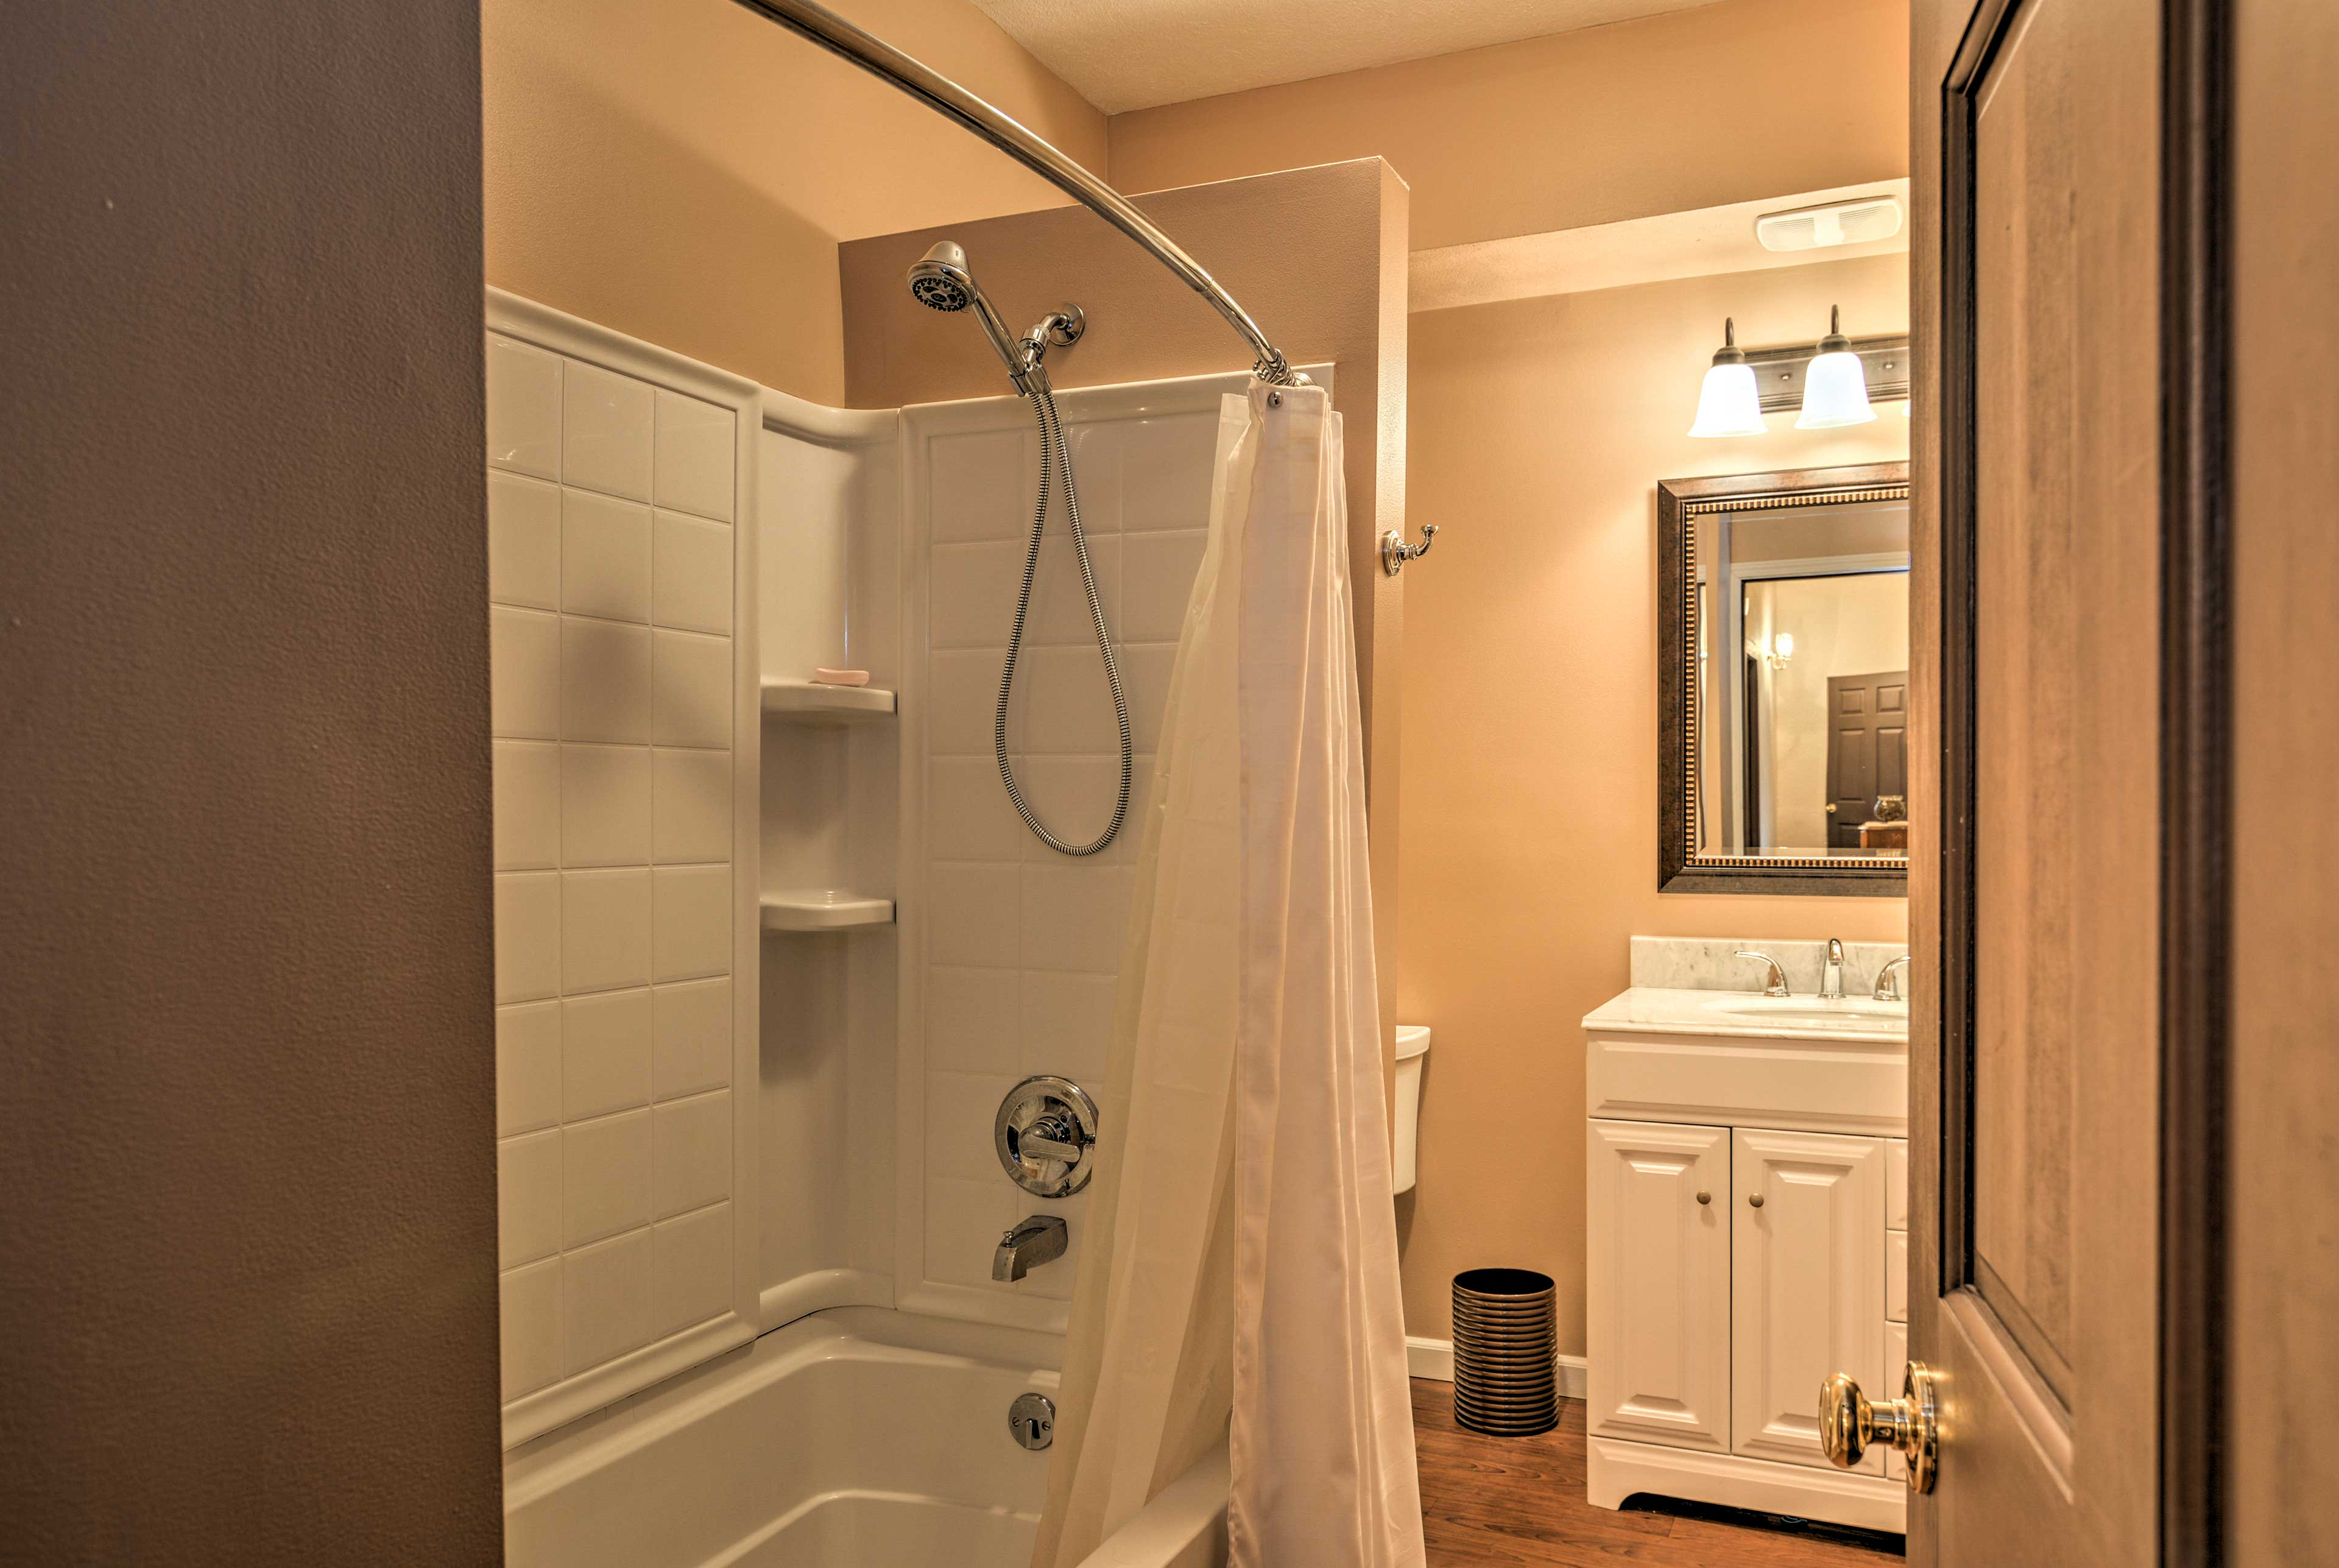 Get ready for the day in the shower/tub combo.